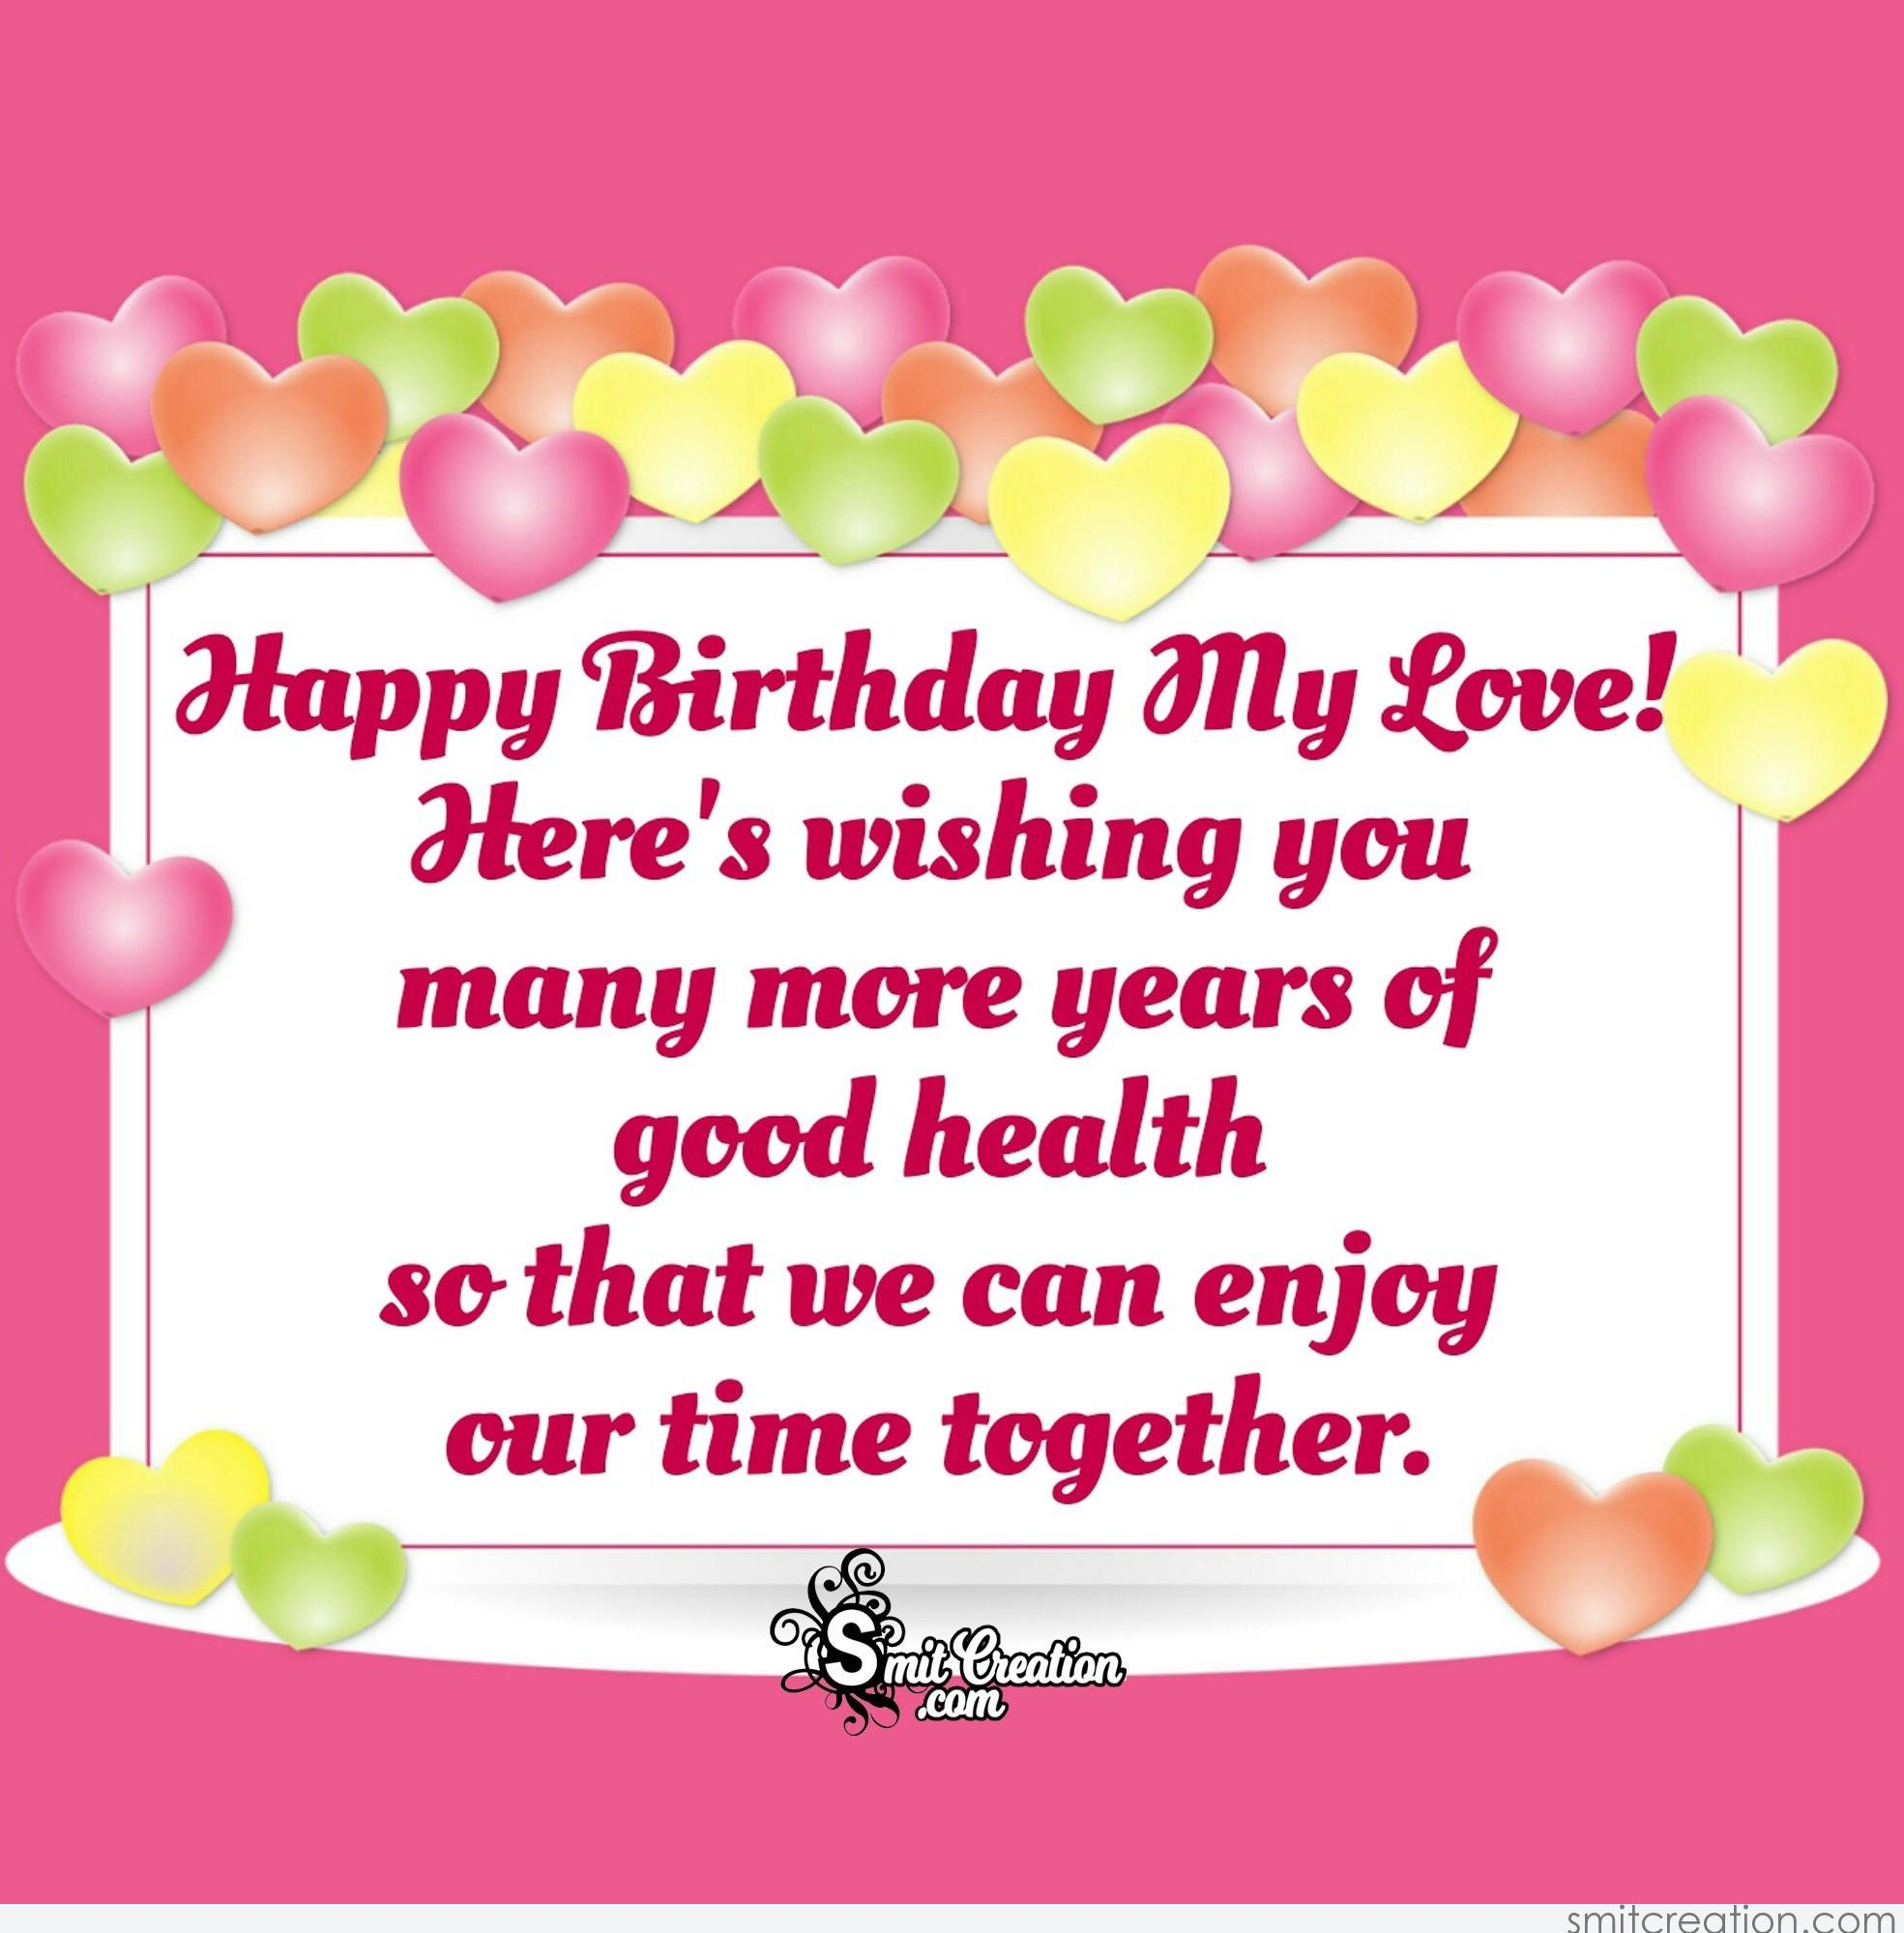 Birthday Wishes For Wife Pictures And Graphics